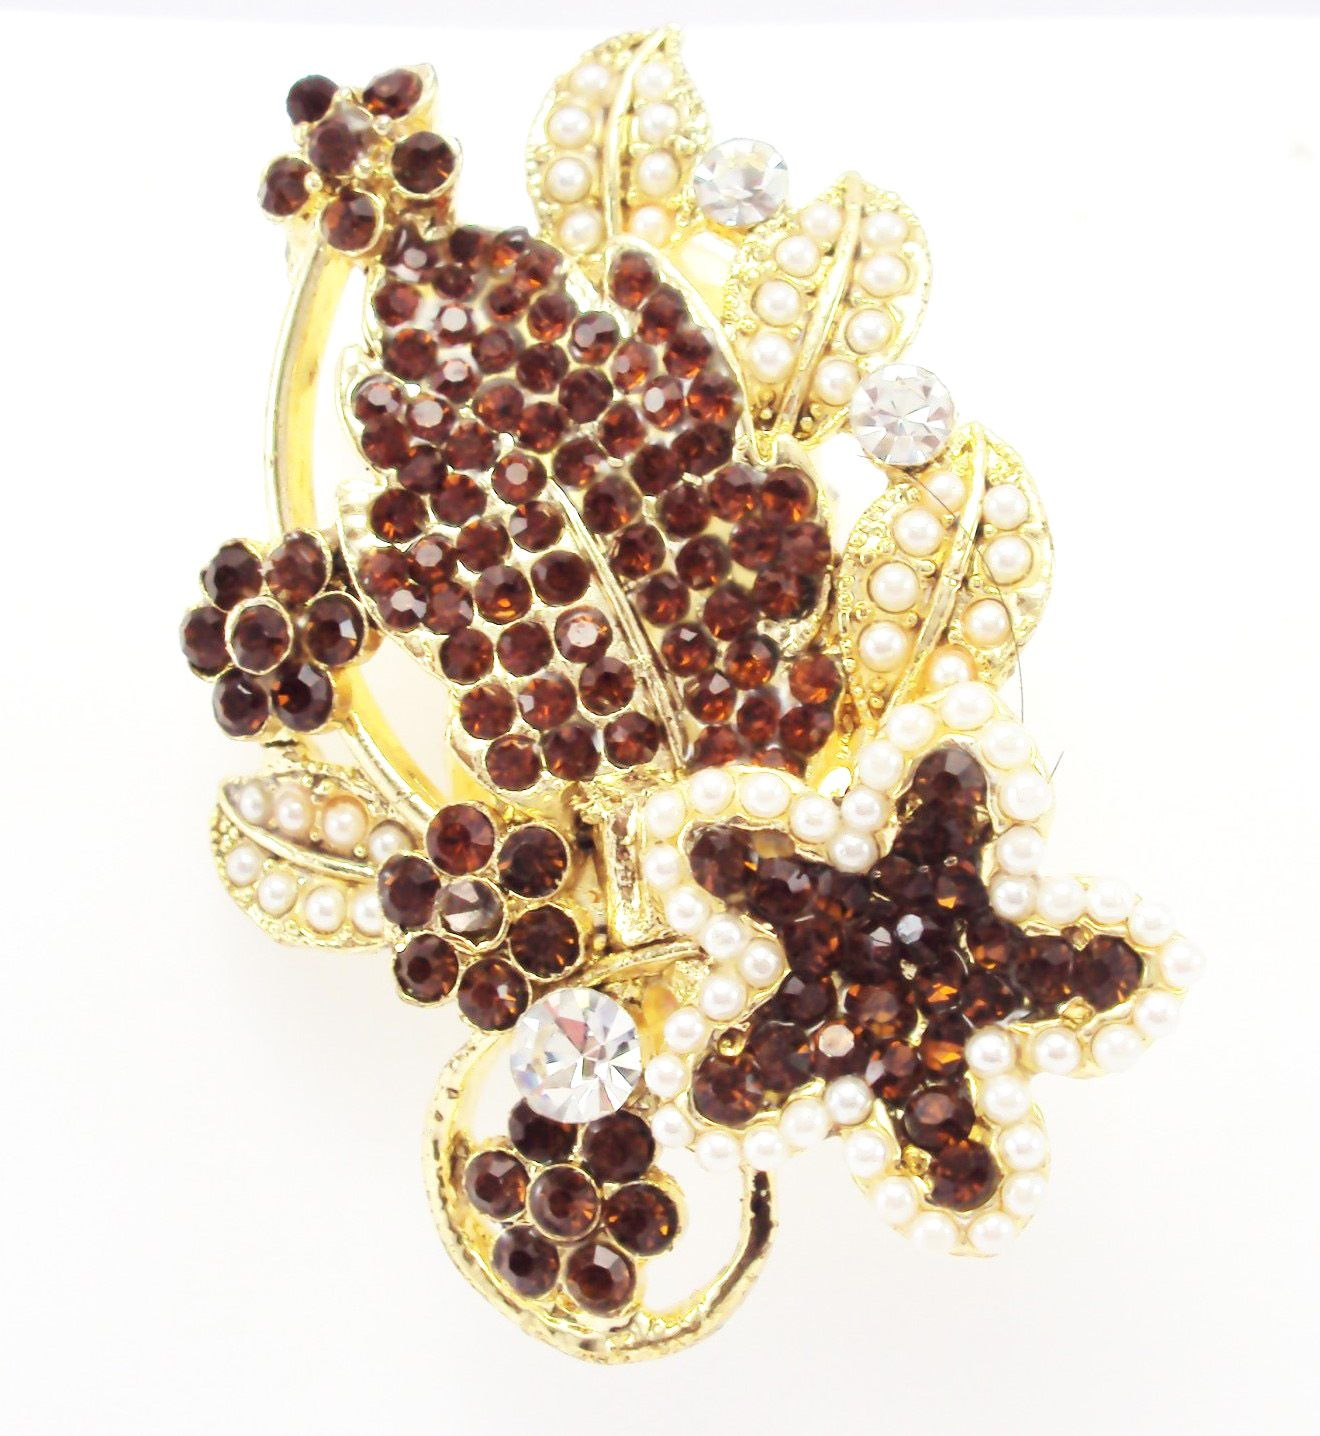 Designer Saree Pin & Brooch, Light Brown Color Stone and Moti Stud, Gold  Tone, For Men & Women Both